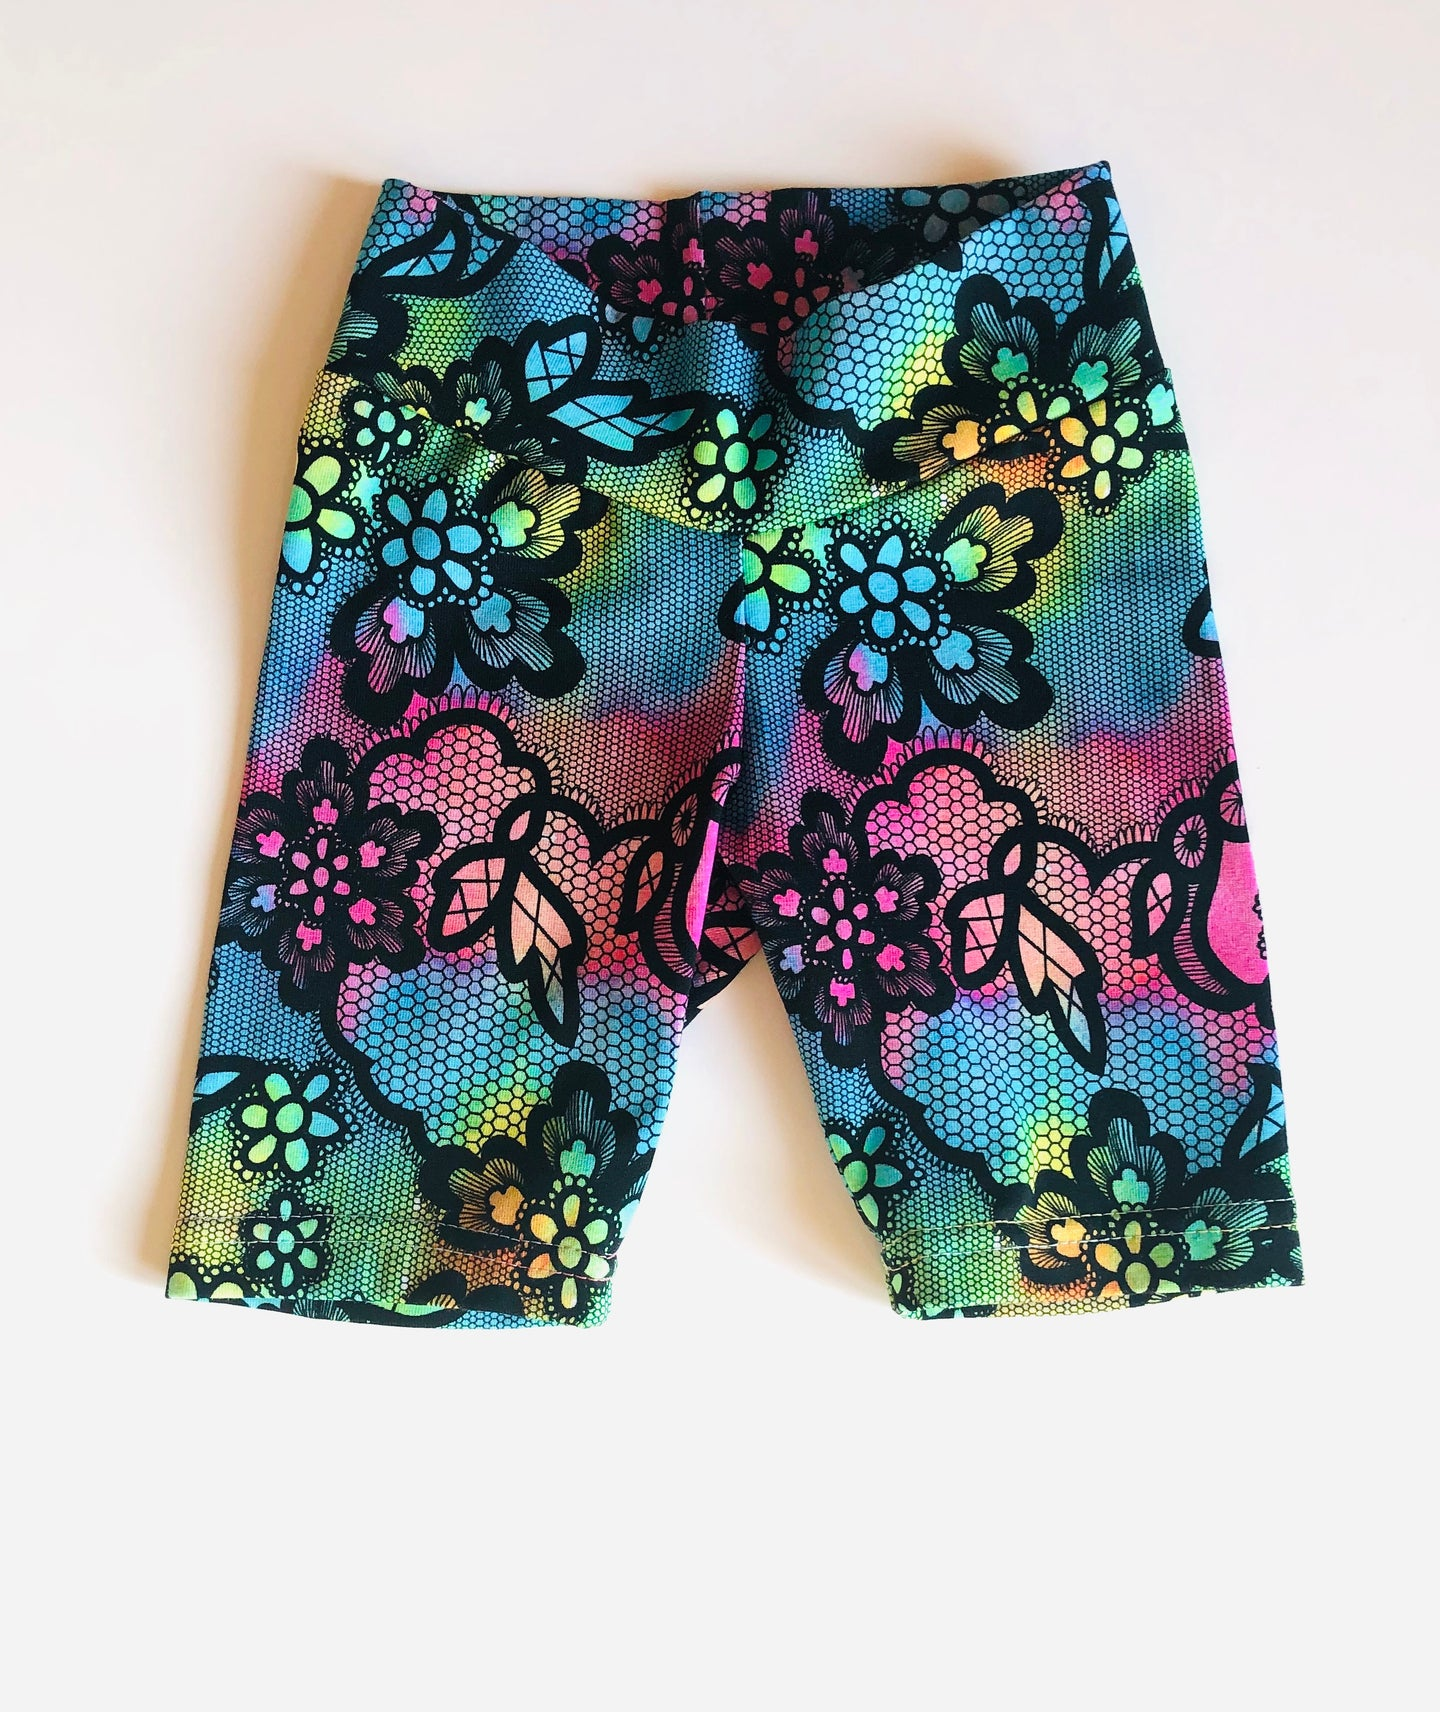 Handmade shorts 'Rainbow lace' size 2T- READY TO SHIP